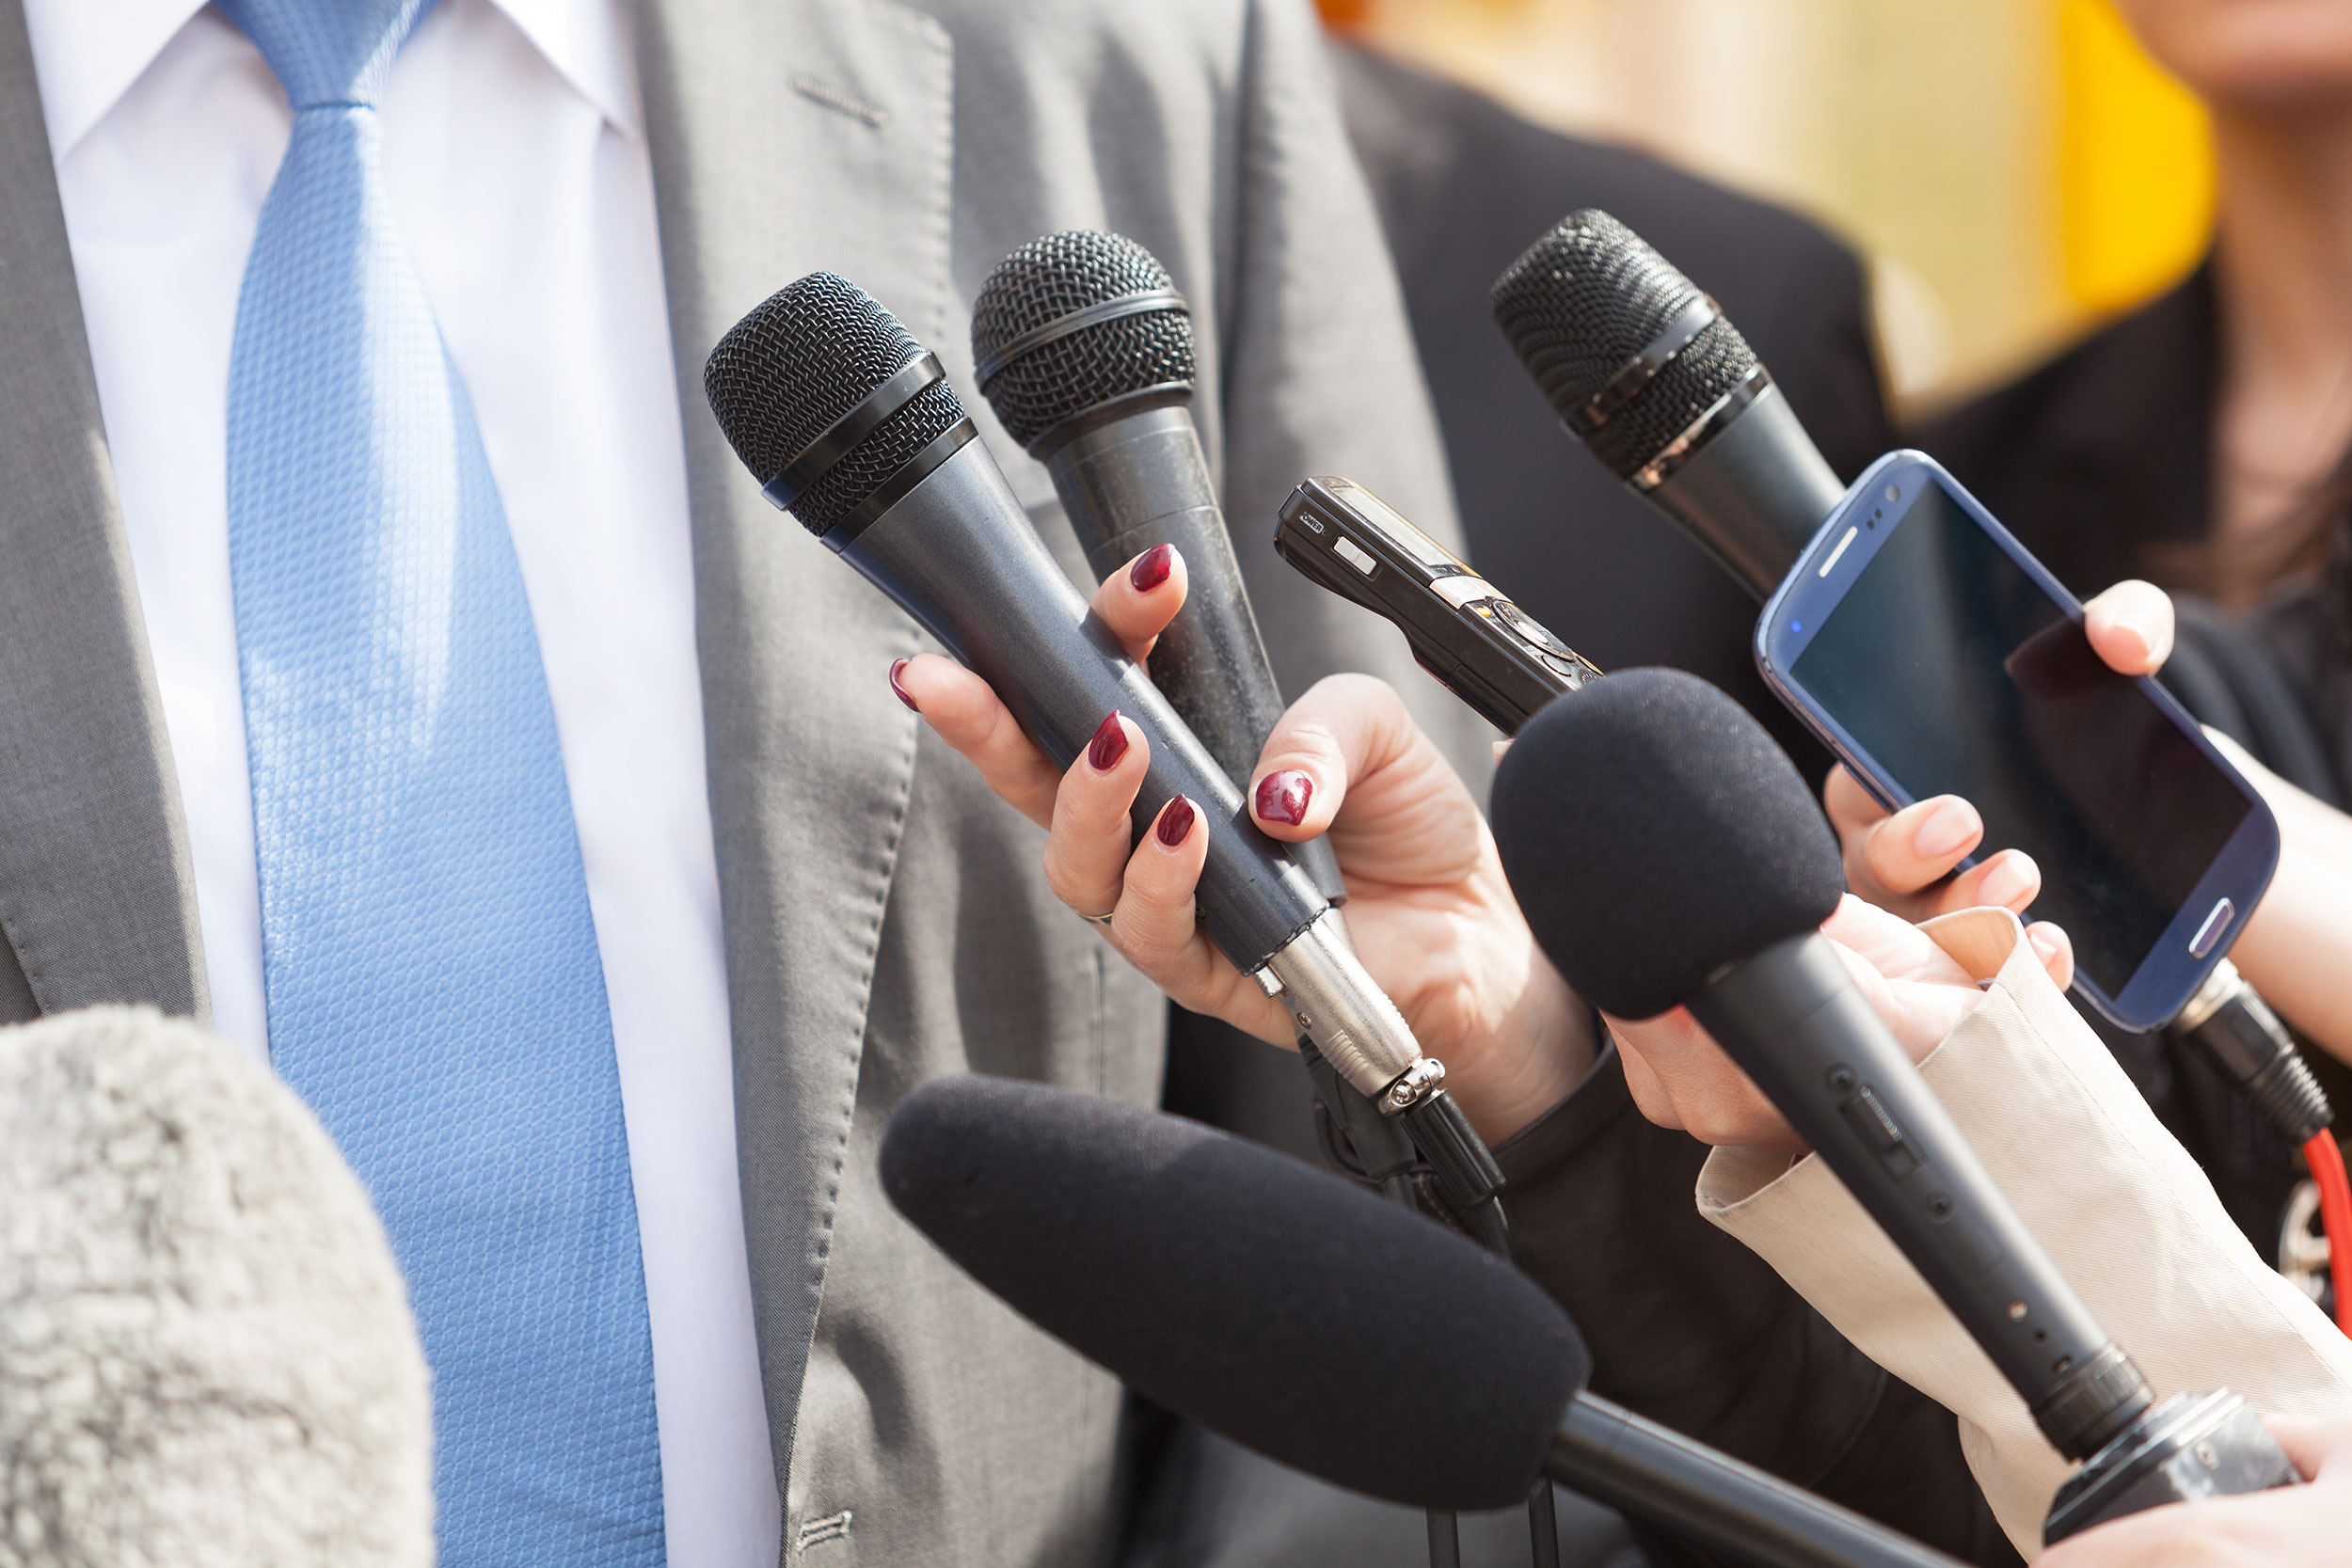 THE MEDIA SPOTLIGHT  The pressure of the 24/7 news cycle can seem overwhelming during a crisis. We can help safeguard your reputation and restore stability.